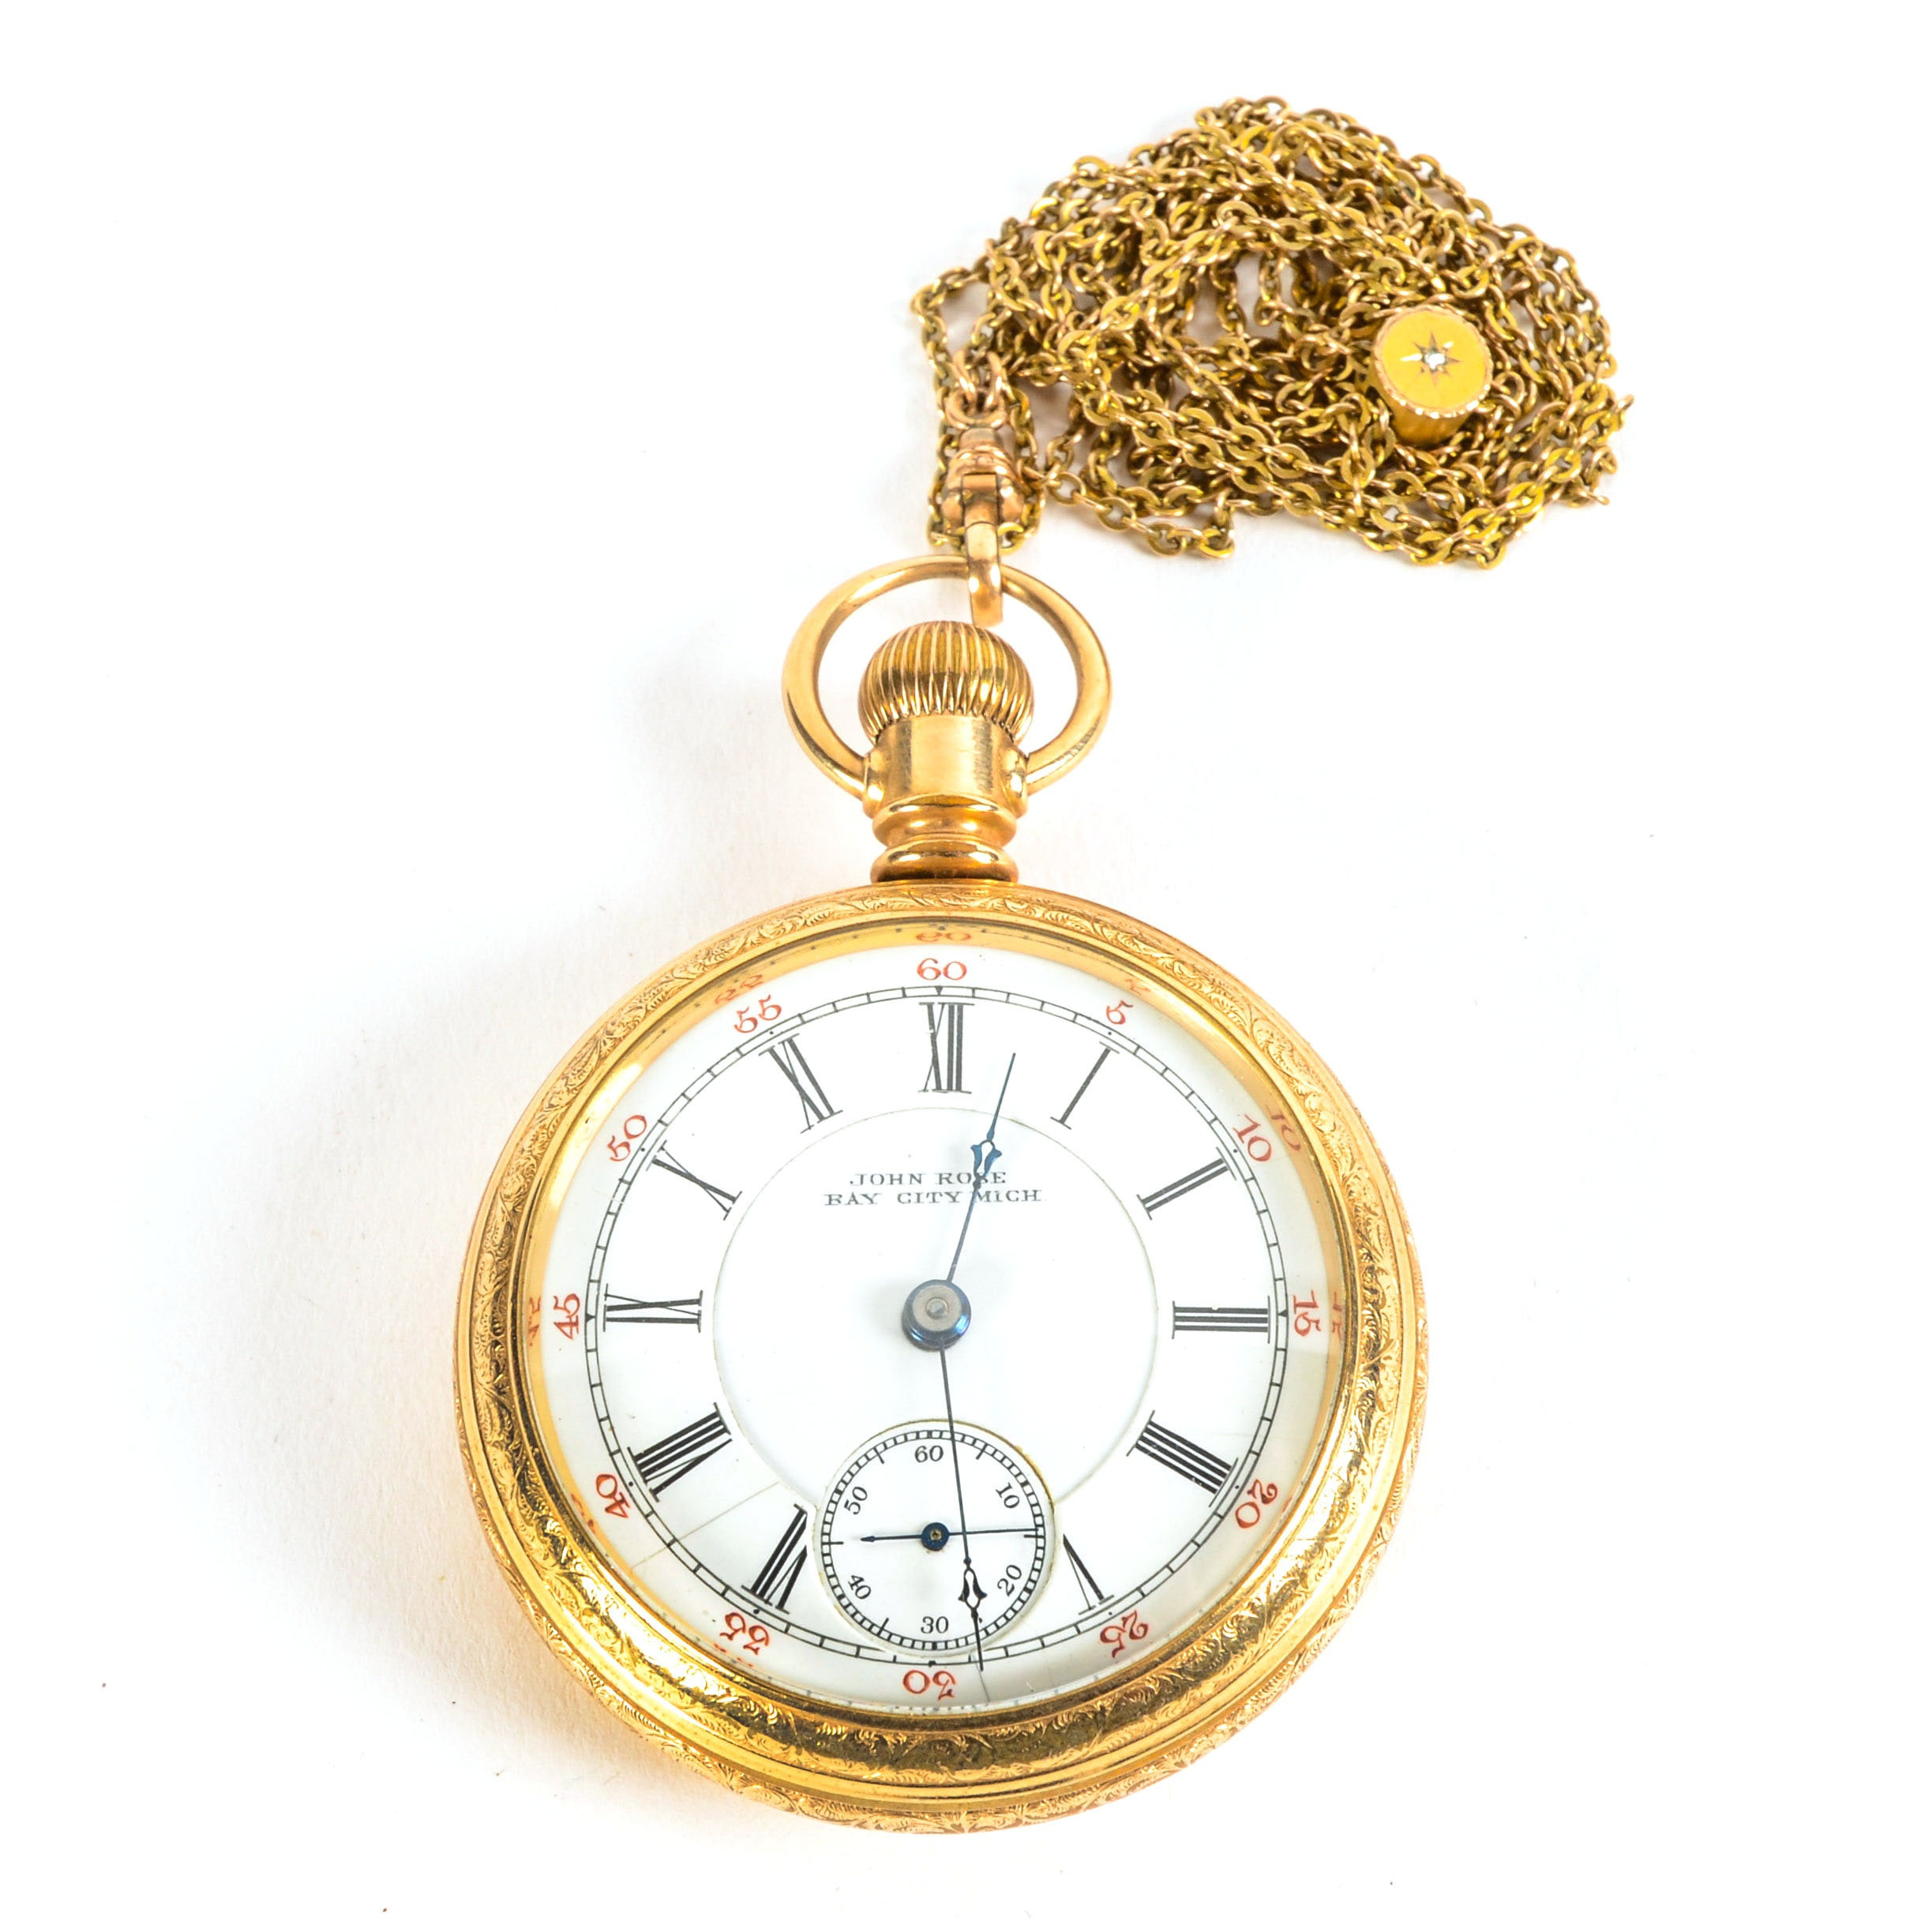 14K Yellow Gold John Rose Pocket Watch and Chain